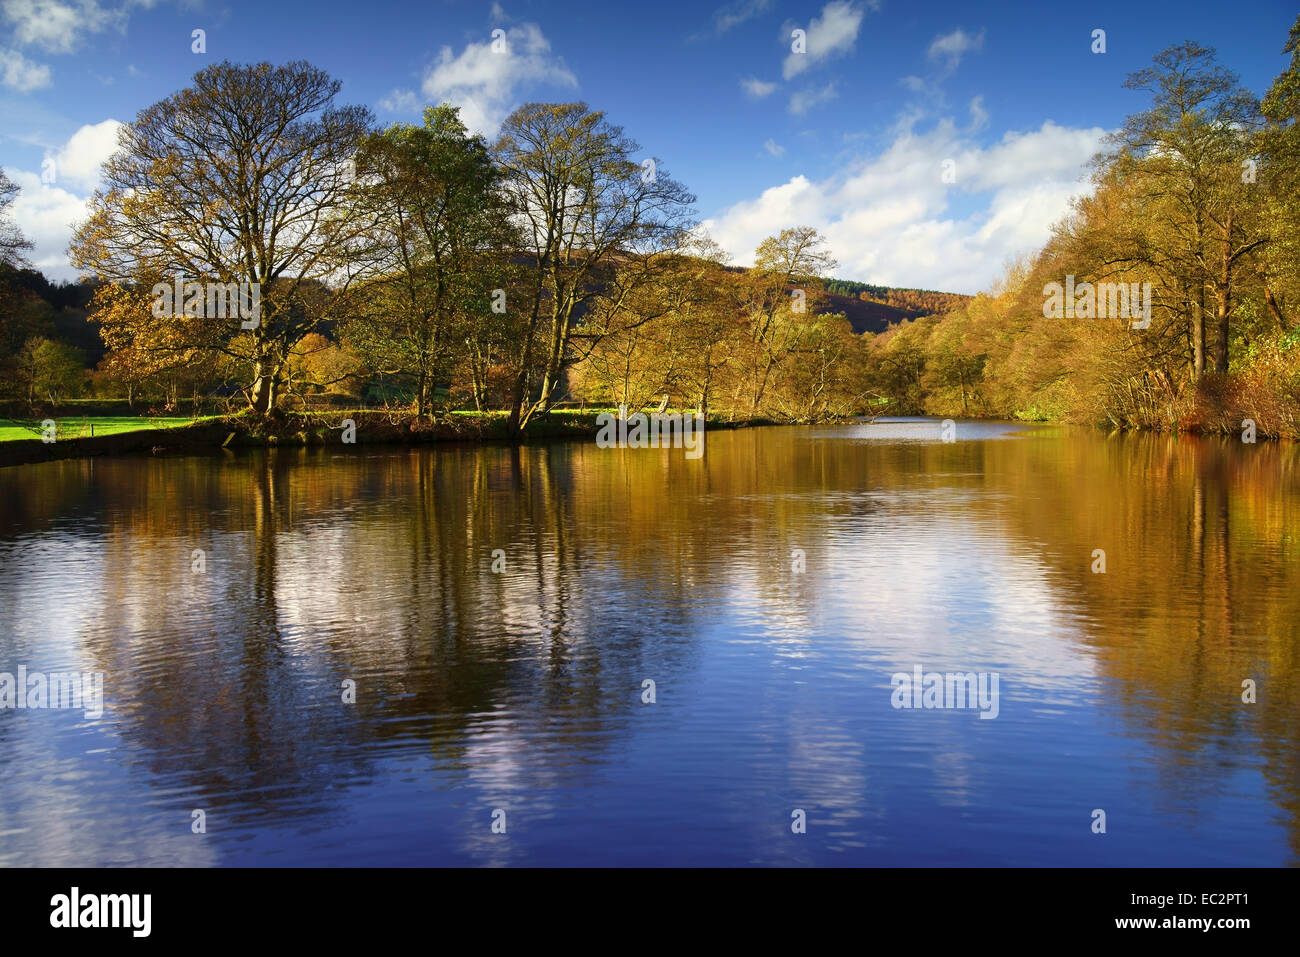 Reino Unido,,Derbyshire Peak District,Bamford,Río Derwent reflexiones Imagen De Stock